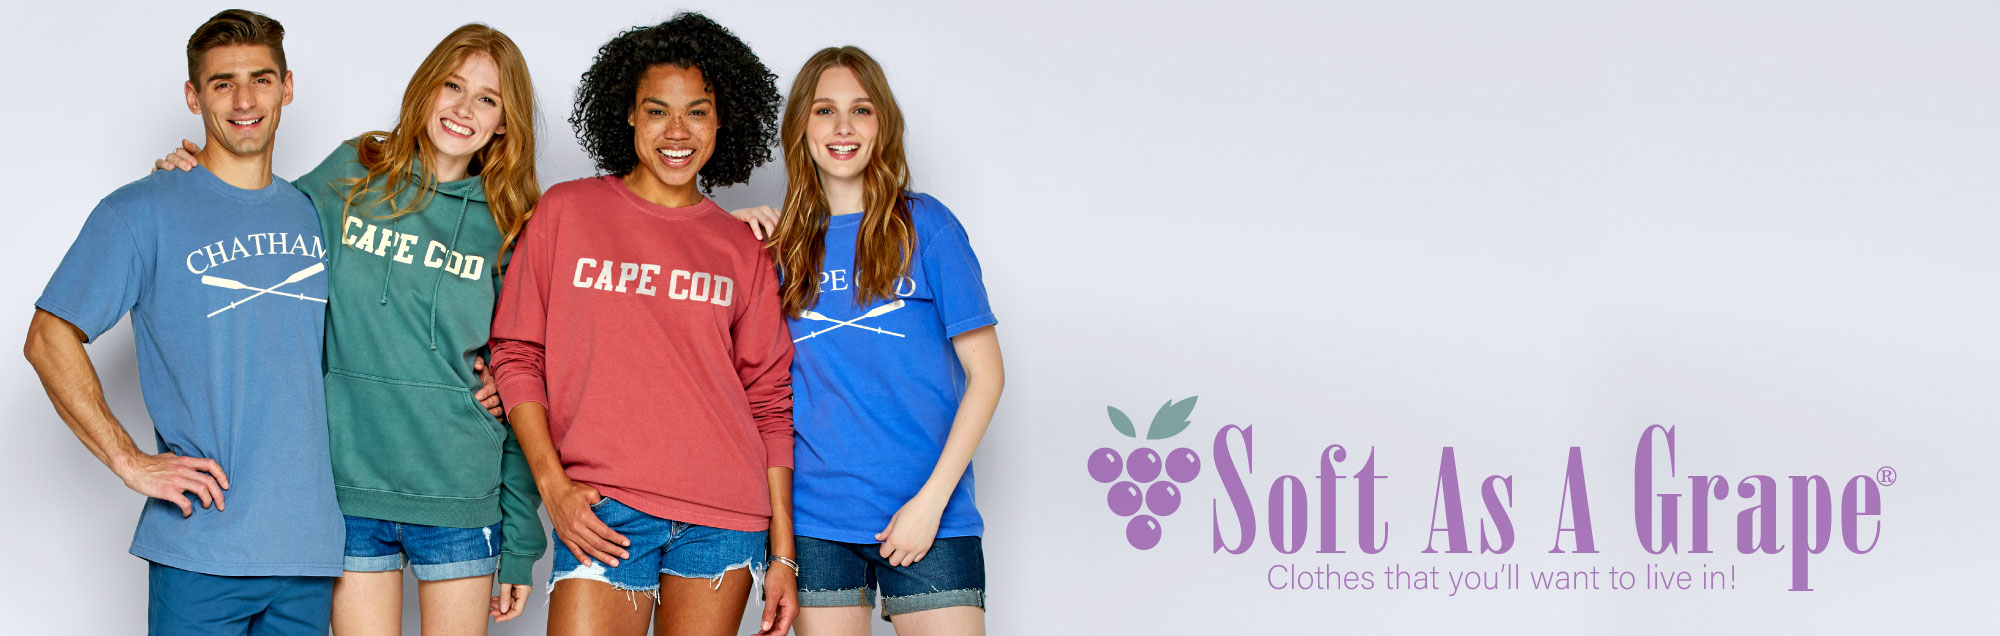 Soft as a Grape home page hero image